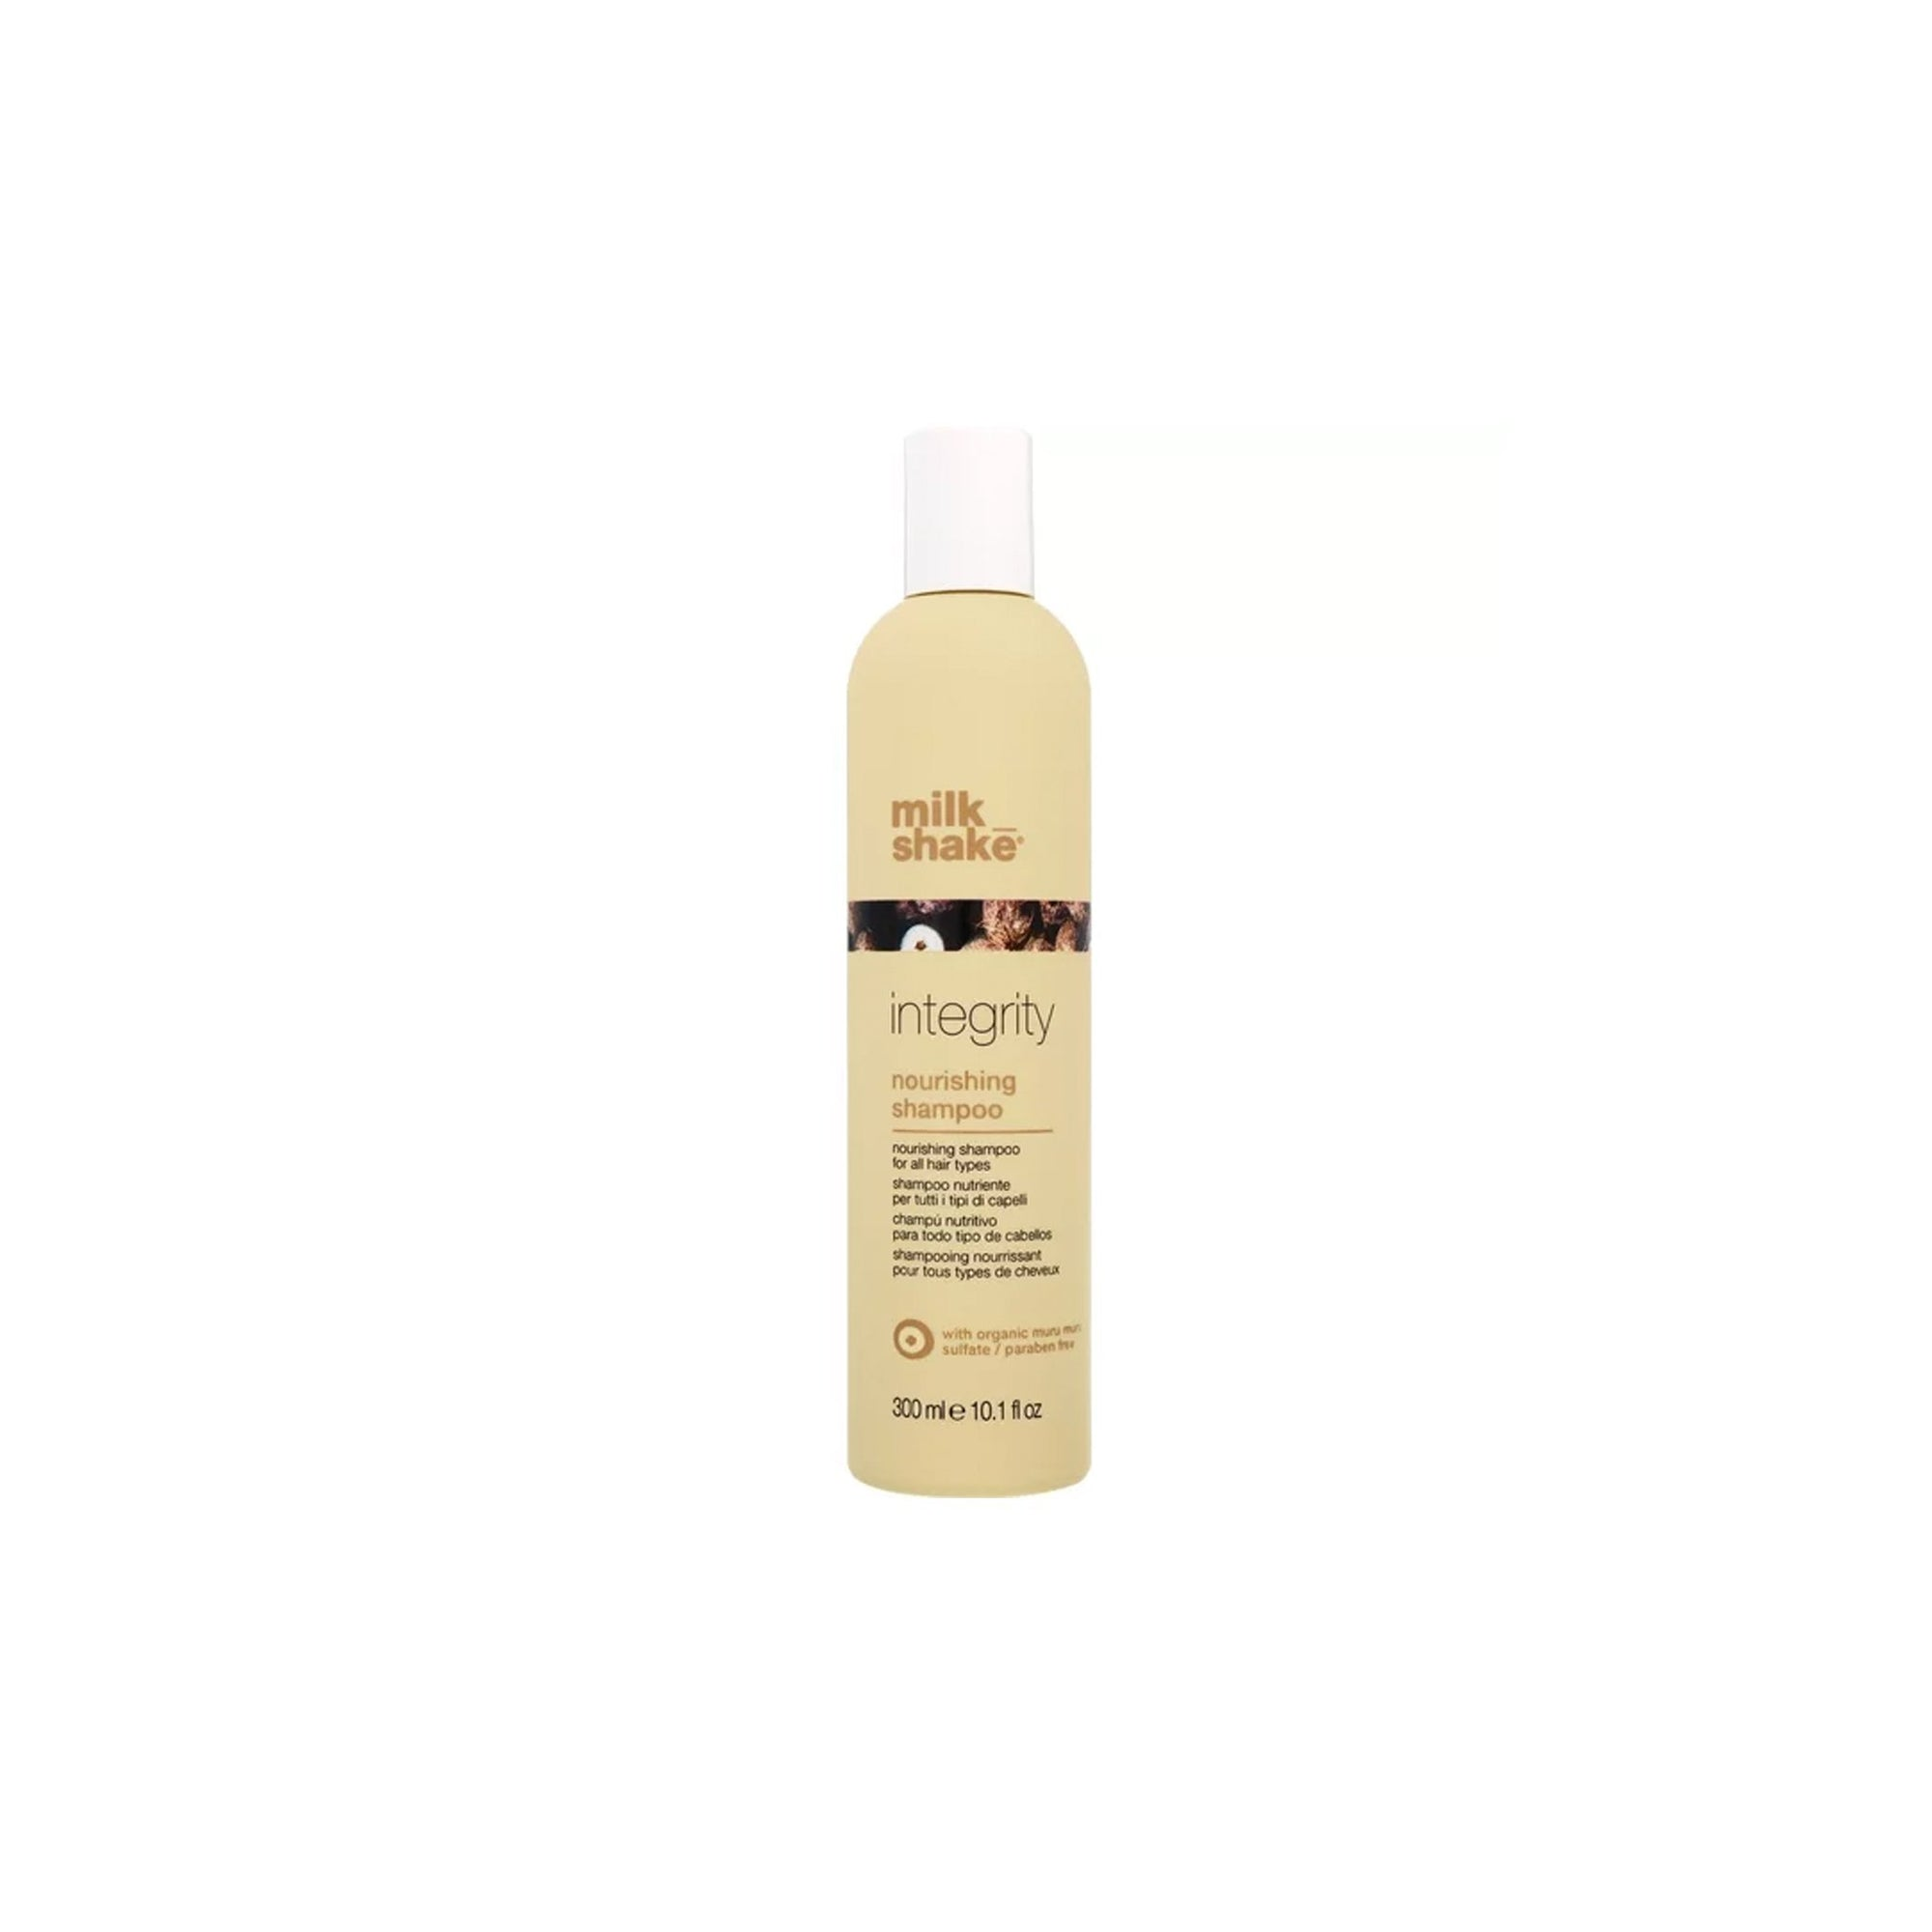 Milkshake Integrity Shampoo 300ml